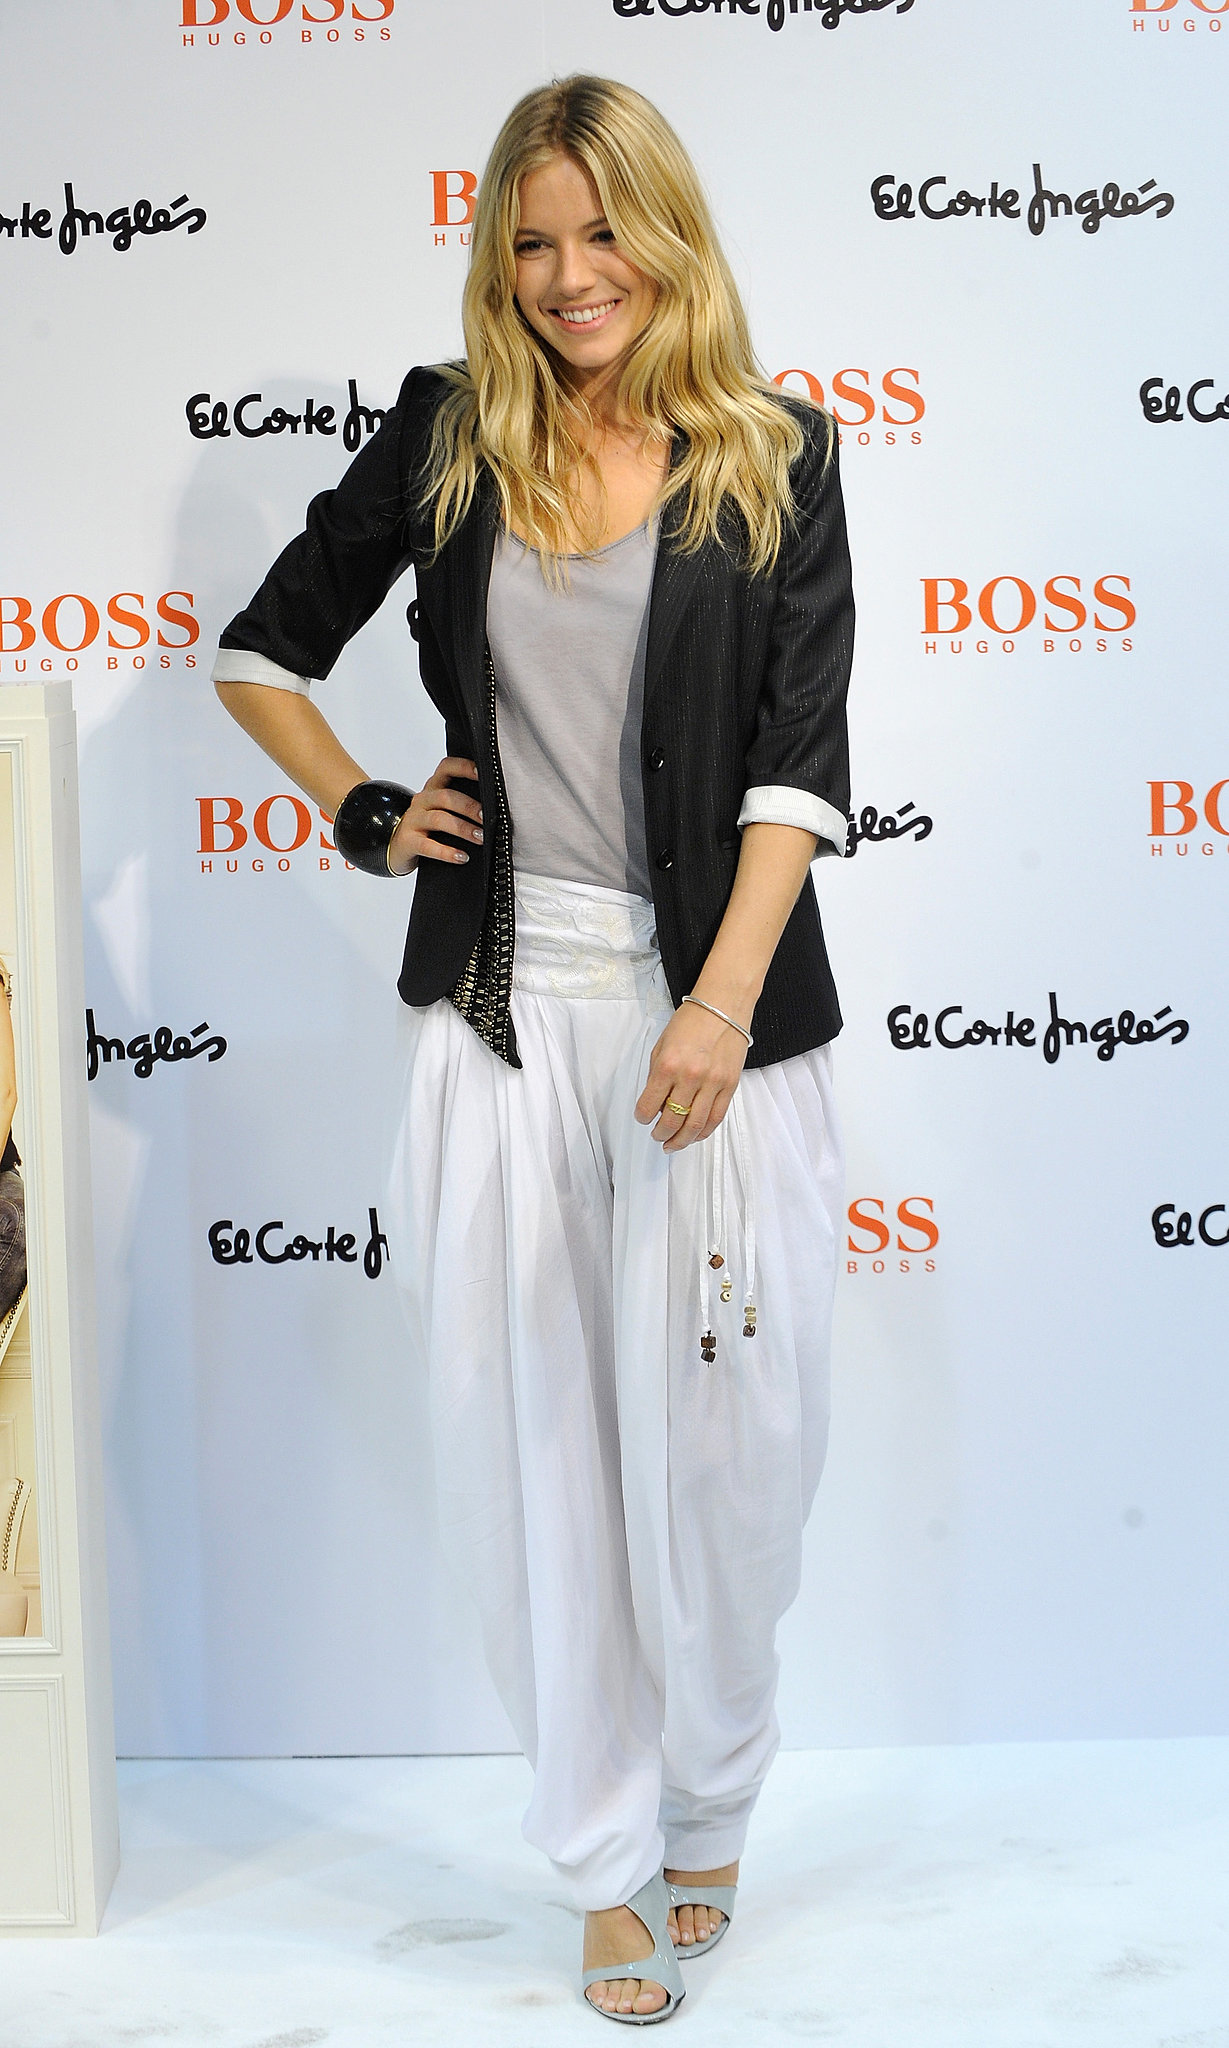 Sienna teamed harem pants with a blazer for an event in 2009.